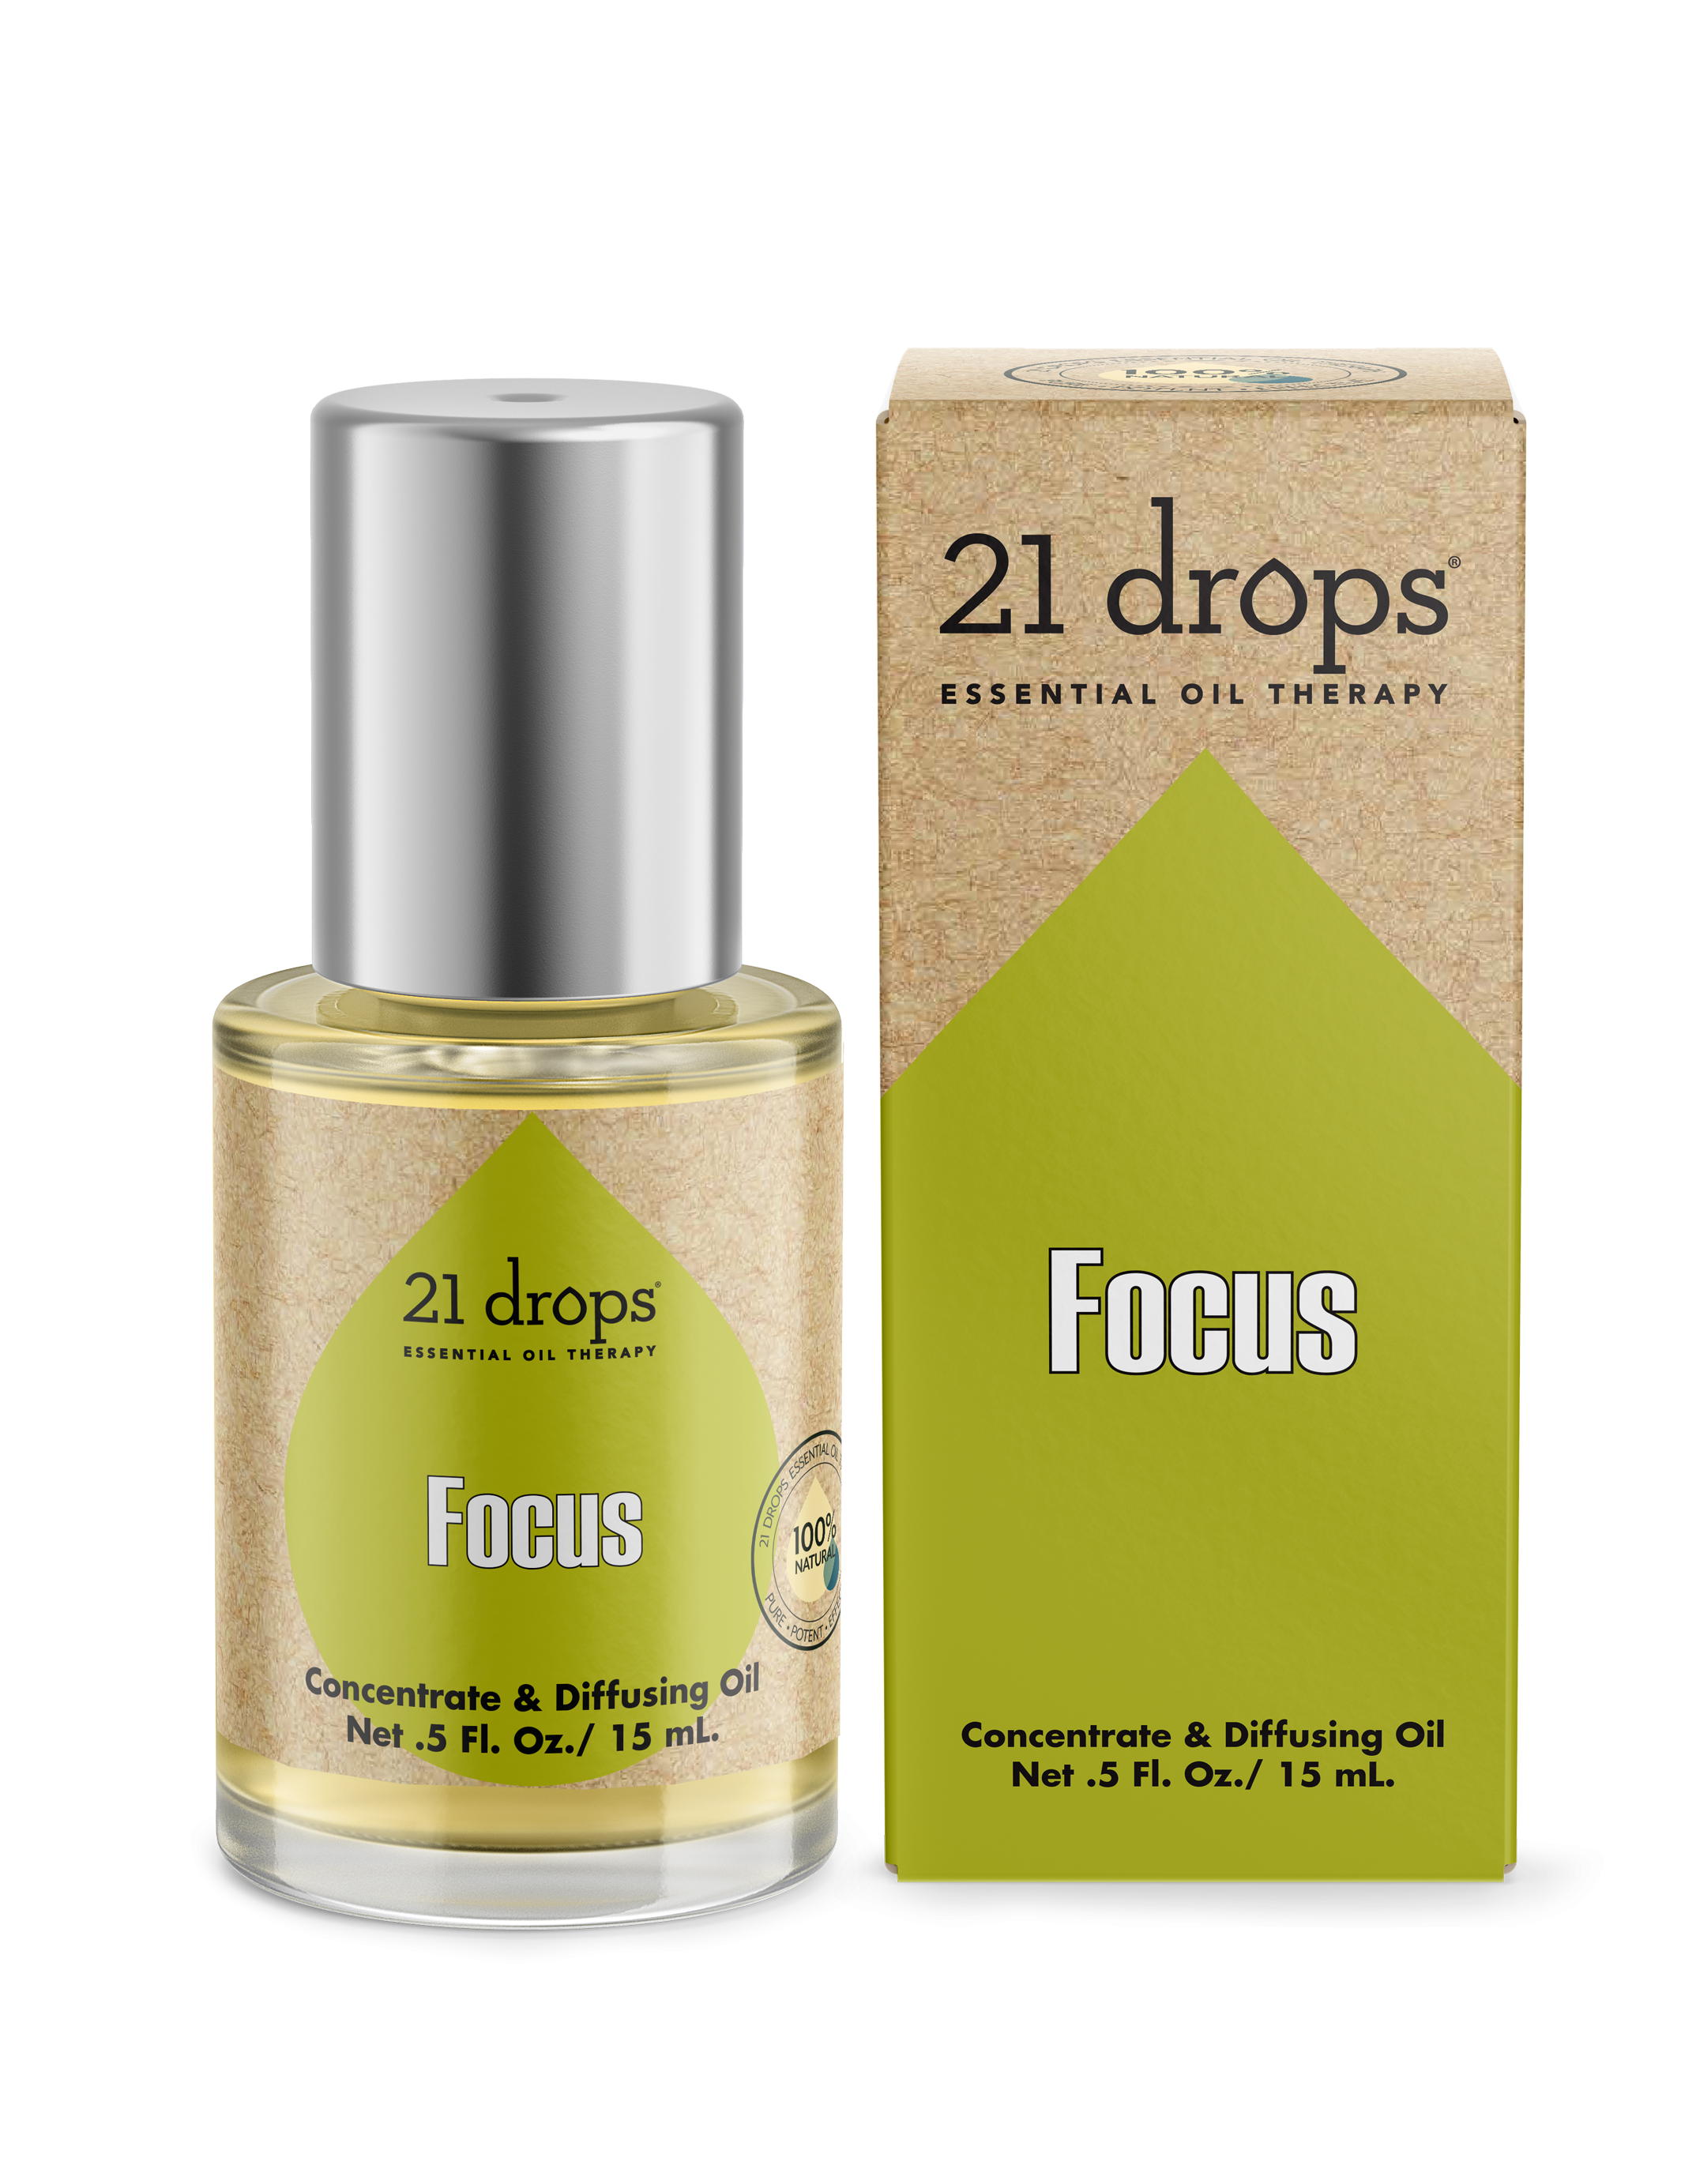 21 drops focus #09 essential oil aromatherapy concentrate and diffusing oil